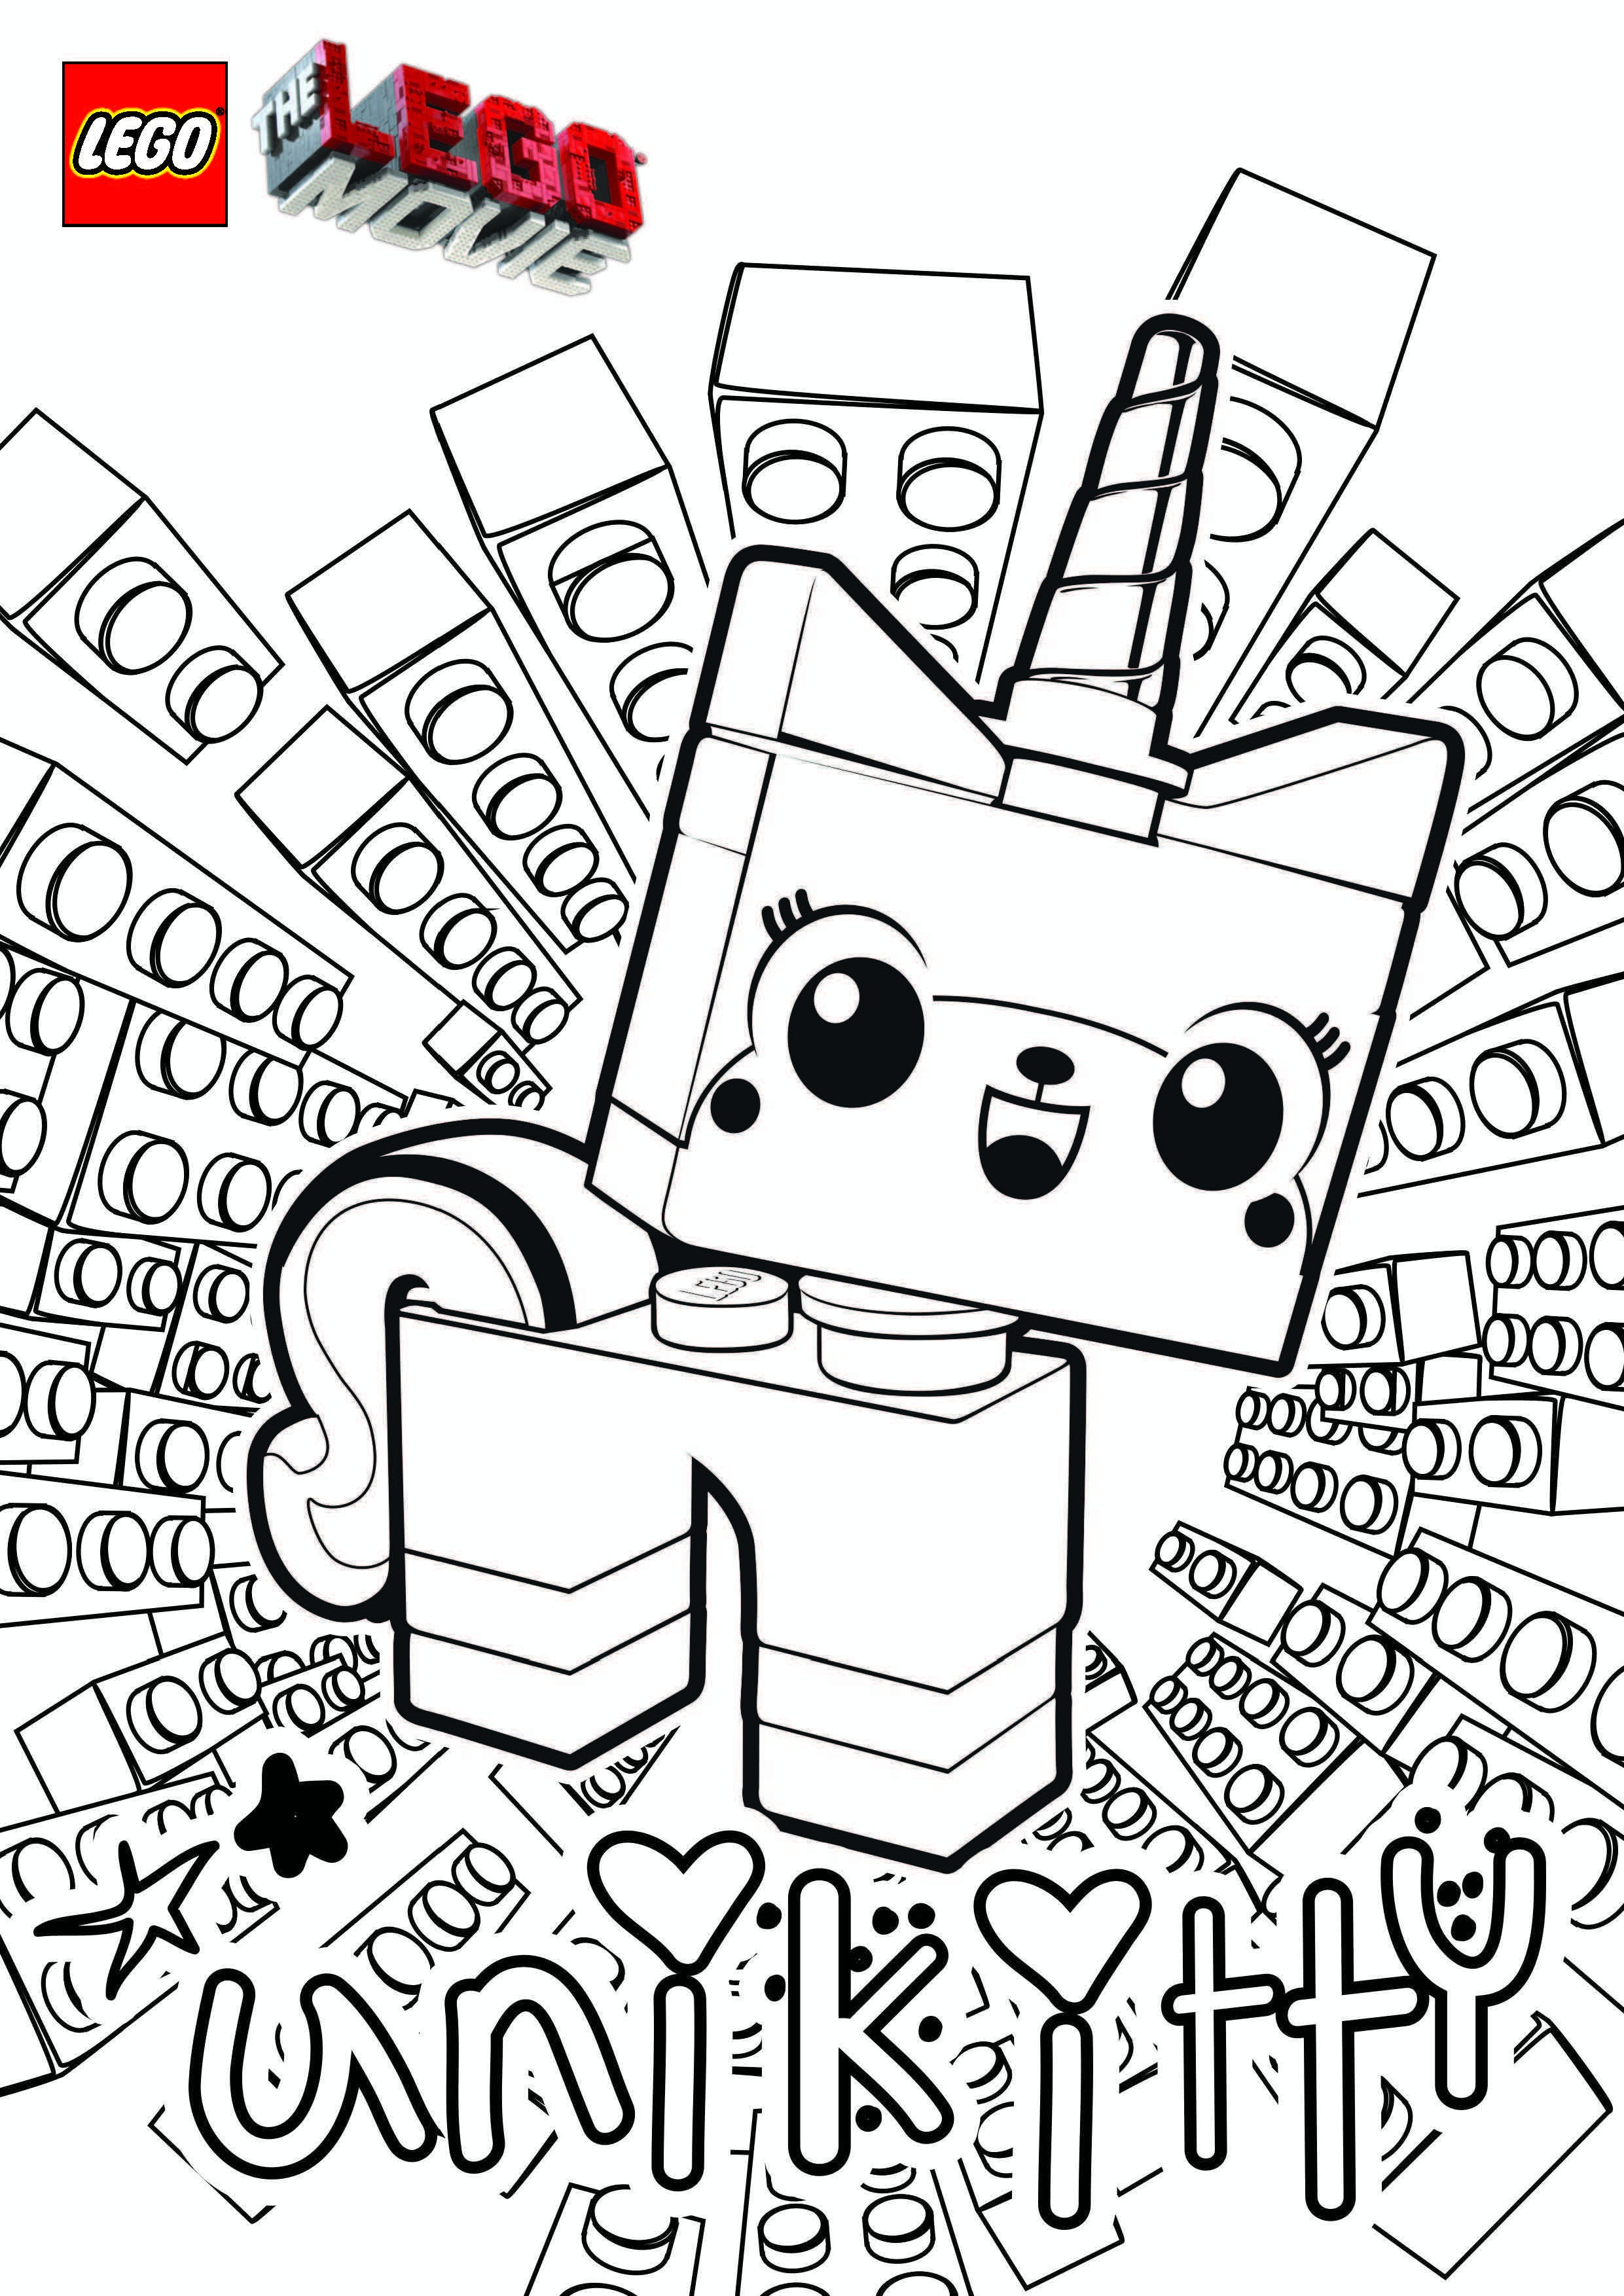 2481x3508 Lego Movie Coloring Pages Best Of The Lego Movie The Lego Movie